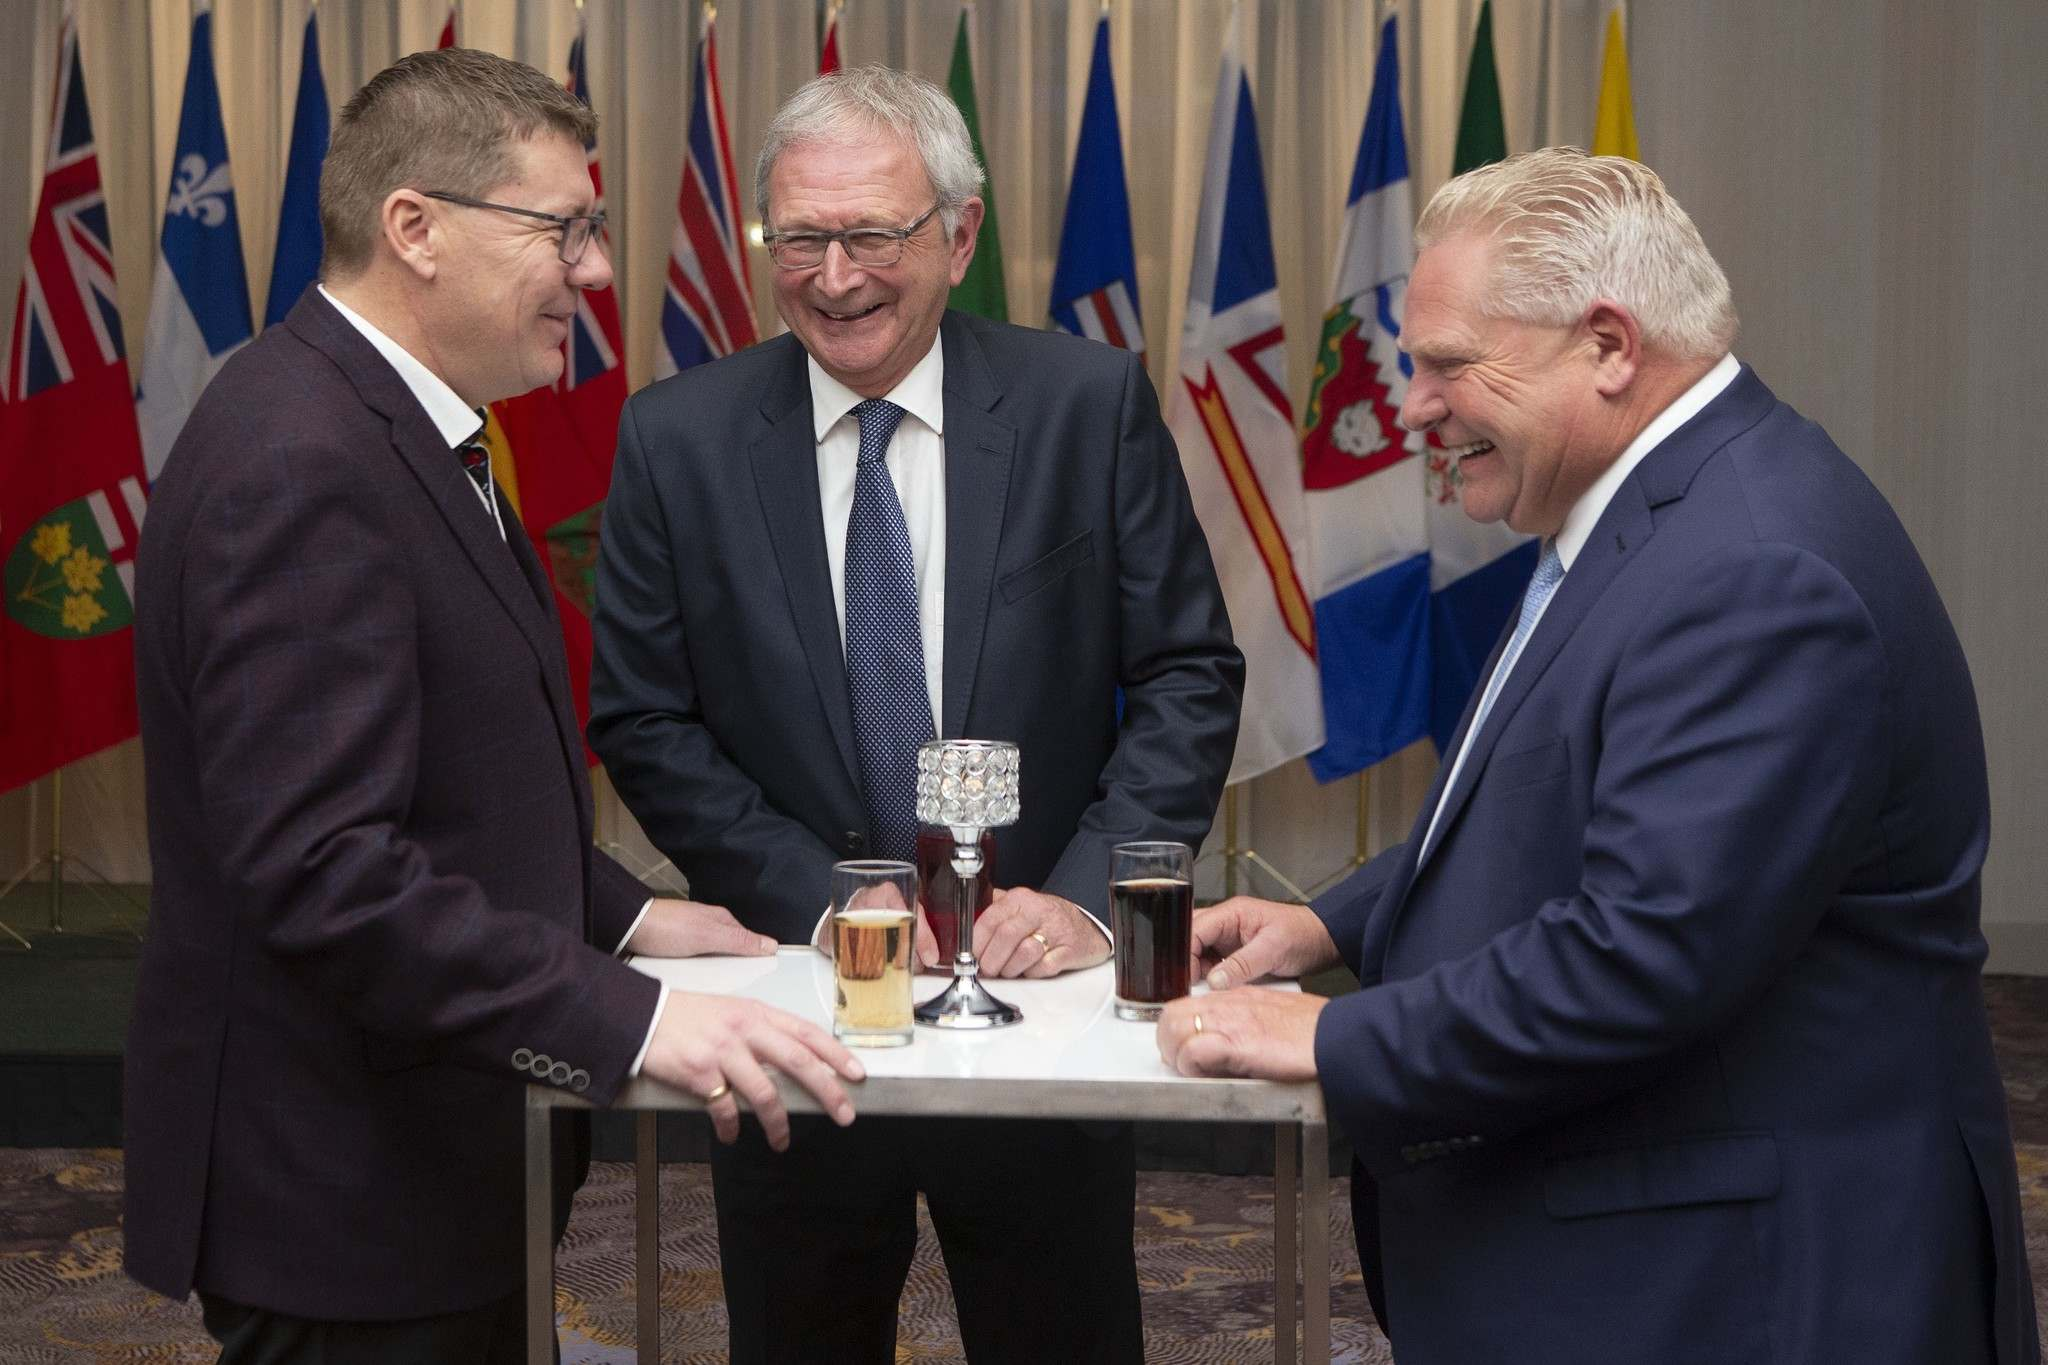 Saskatchewan Premier Scott Moe (from left), New Brunswick Premier Blaine Higgs and Ontario Premier Doug Ford signed an agreement Sunday to promote small modular reactors (SMRs) — leaving Manitoba as the only province under Trudeau's carbon tax to not be part of the effort. (Chris Young / Canadian Press files)</p>